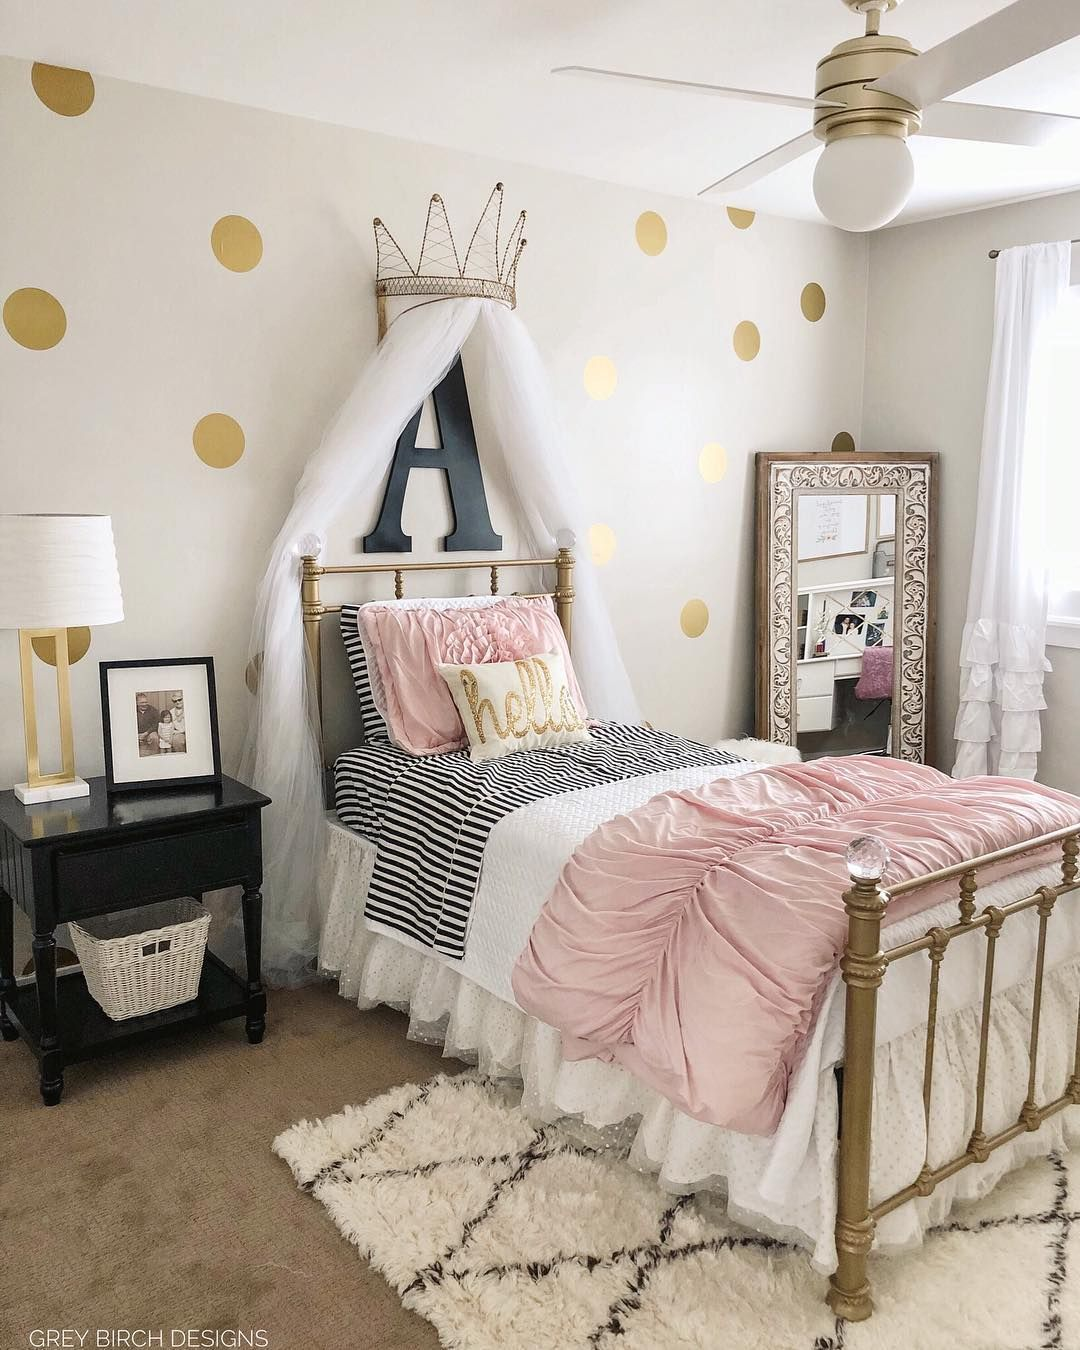 Luxury Kids Room: Go To CIRCU.NET And Find The